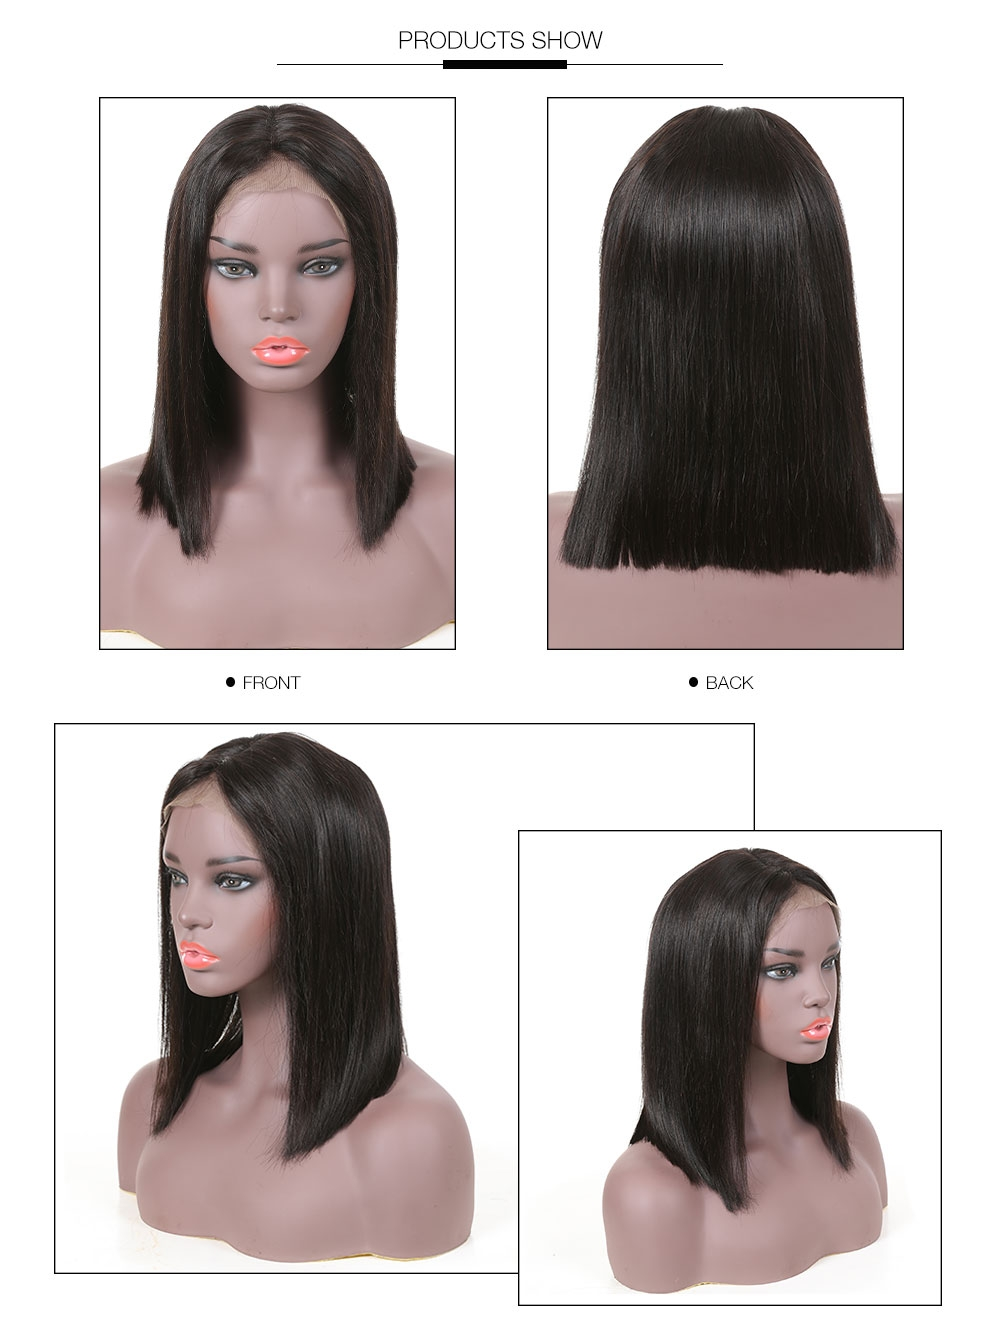 AfricanMall Pre Plucked 100% Human Hair Short Straight Bob Wig show